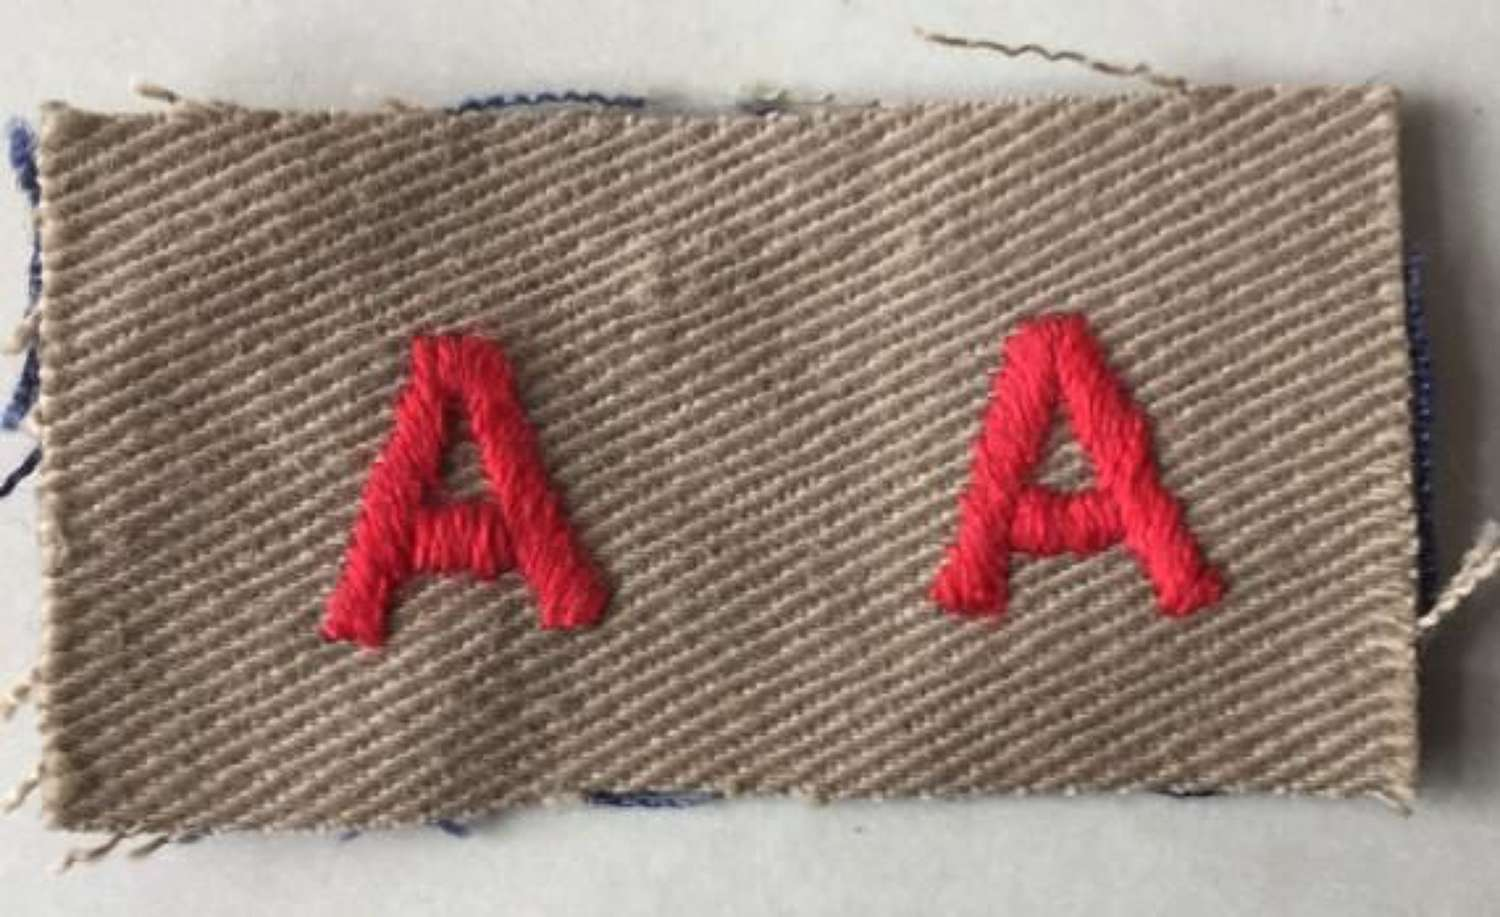 Original WW2 Period Tropical KD Matched Pair of Royal Auxiliary Reserve Sleeve Badges